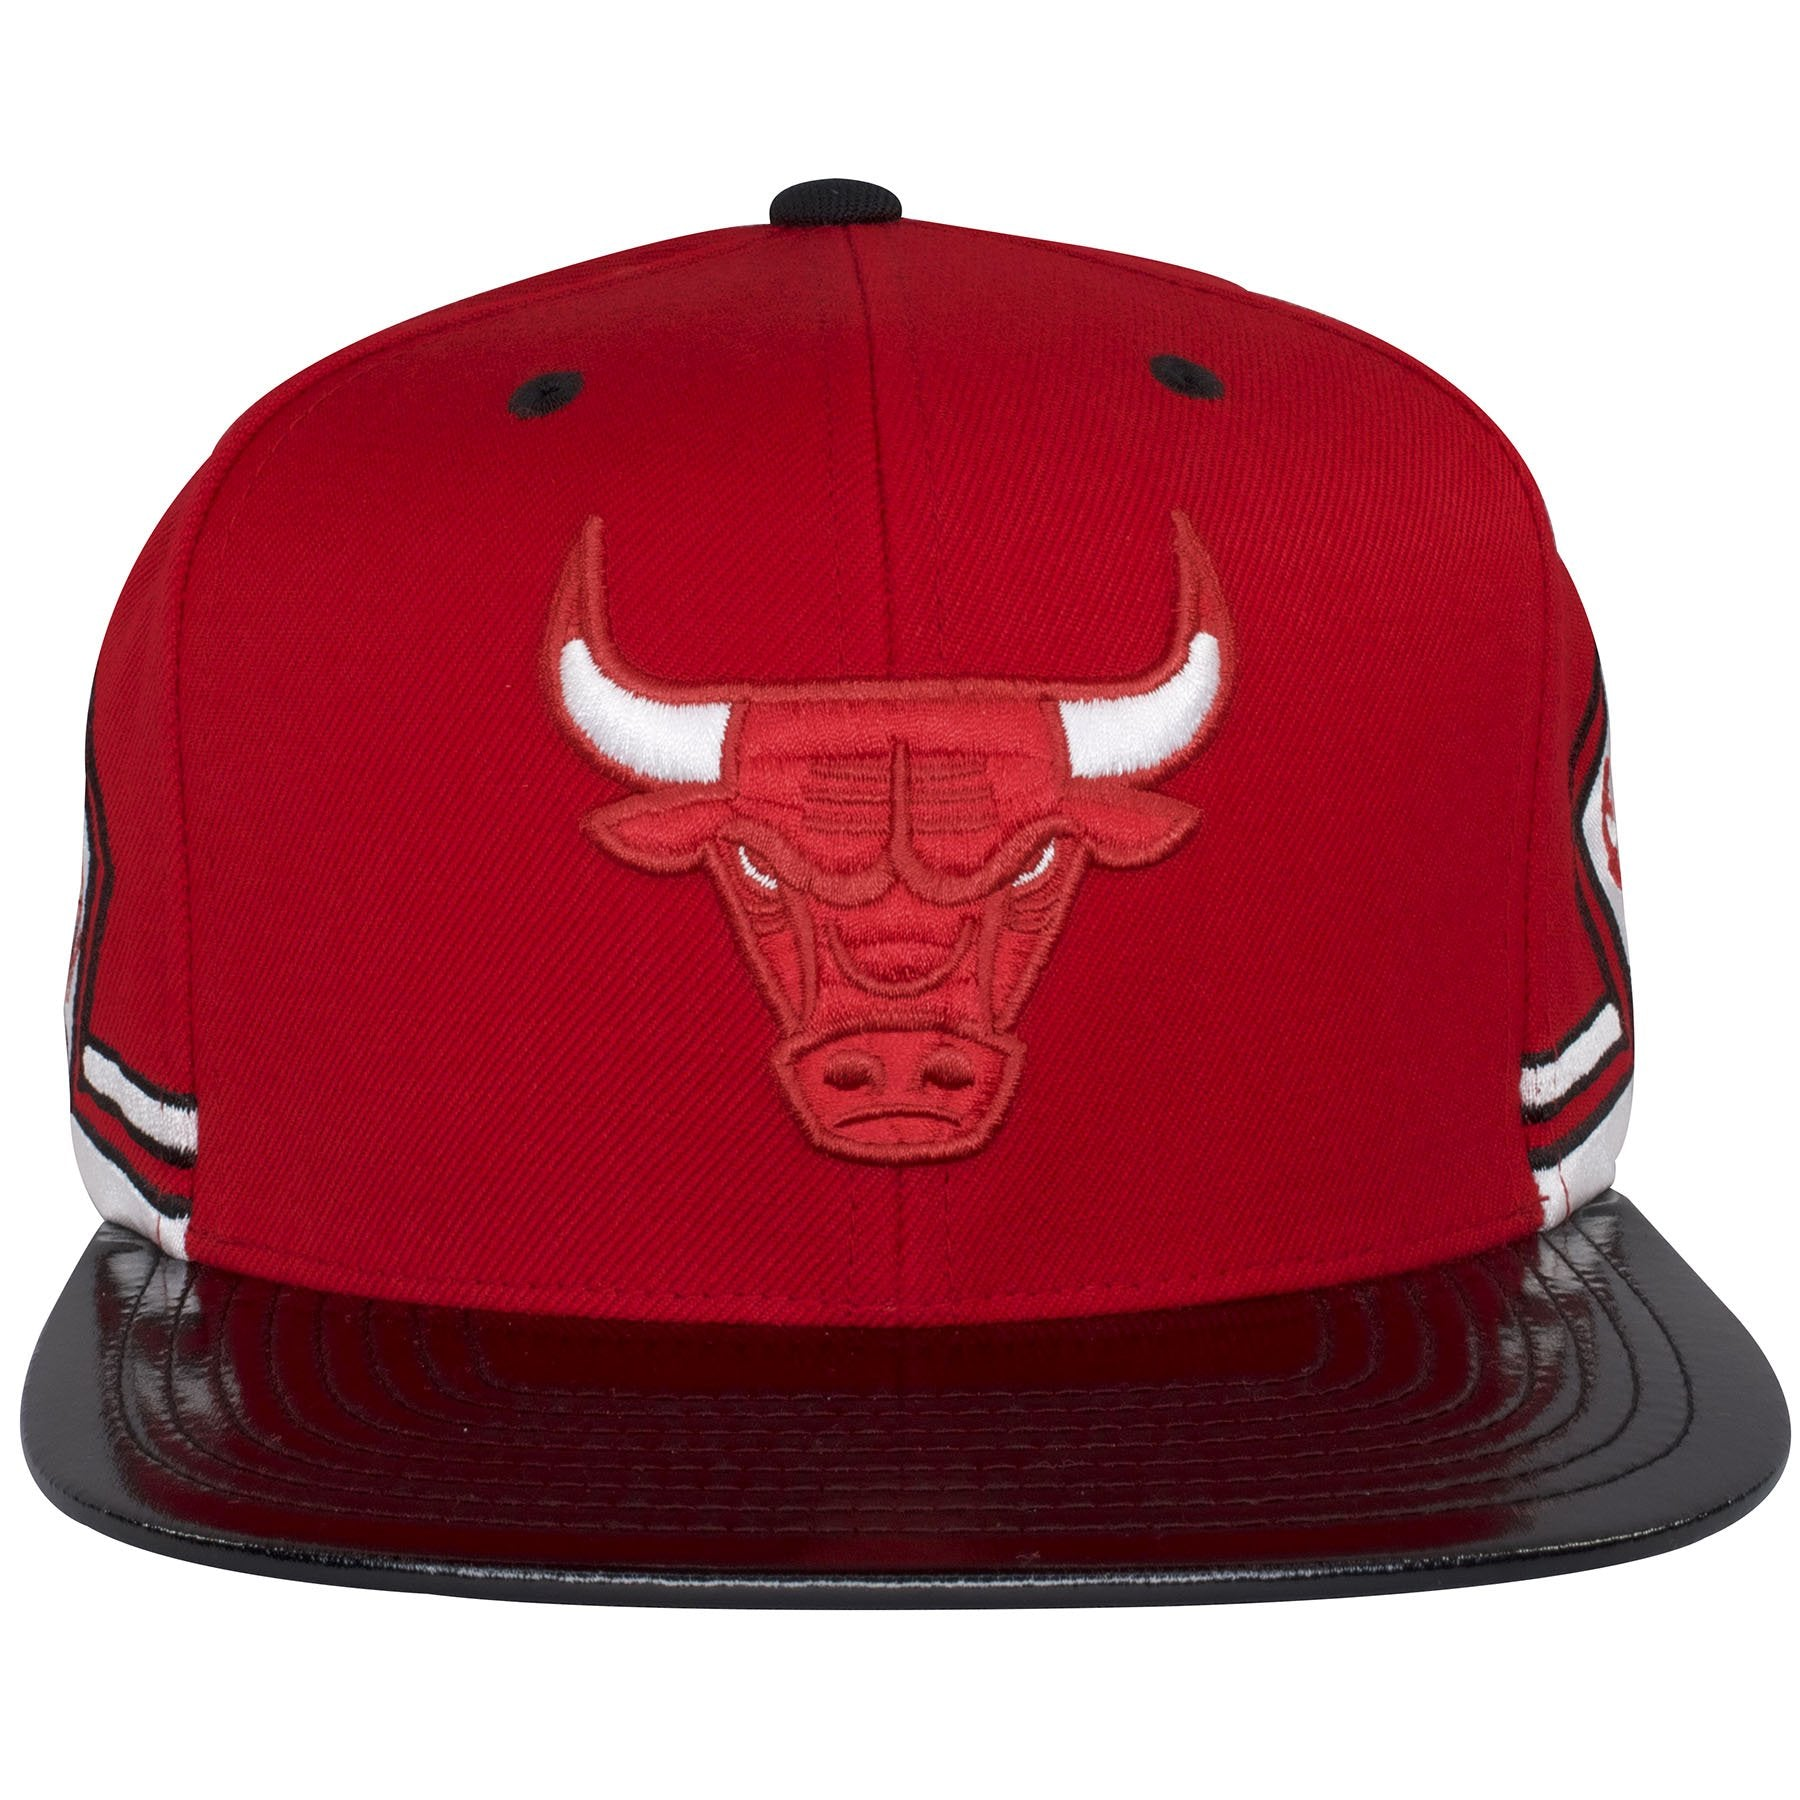 The flat bill of this Chicago Bulls red snapback is made with a black  patent leather 8d0c724f9e2